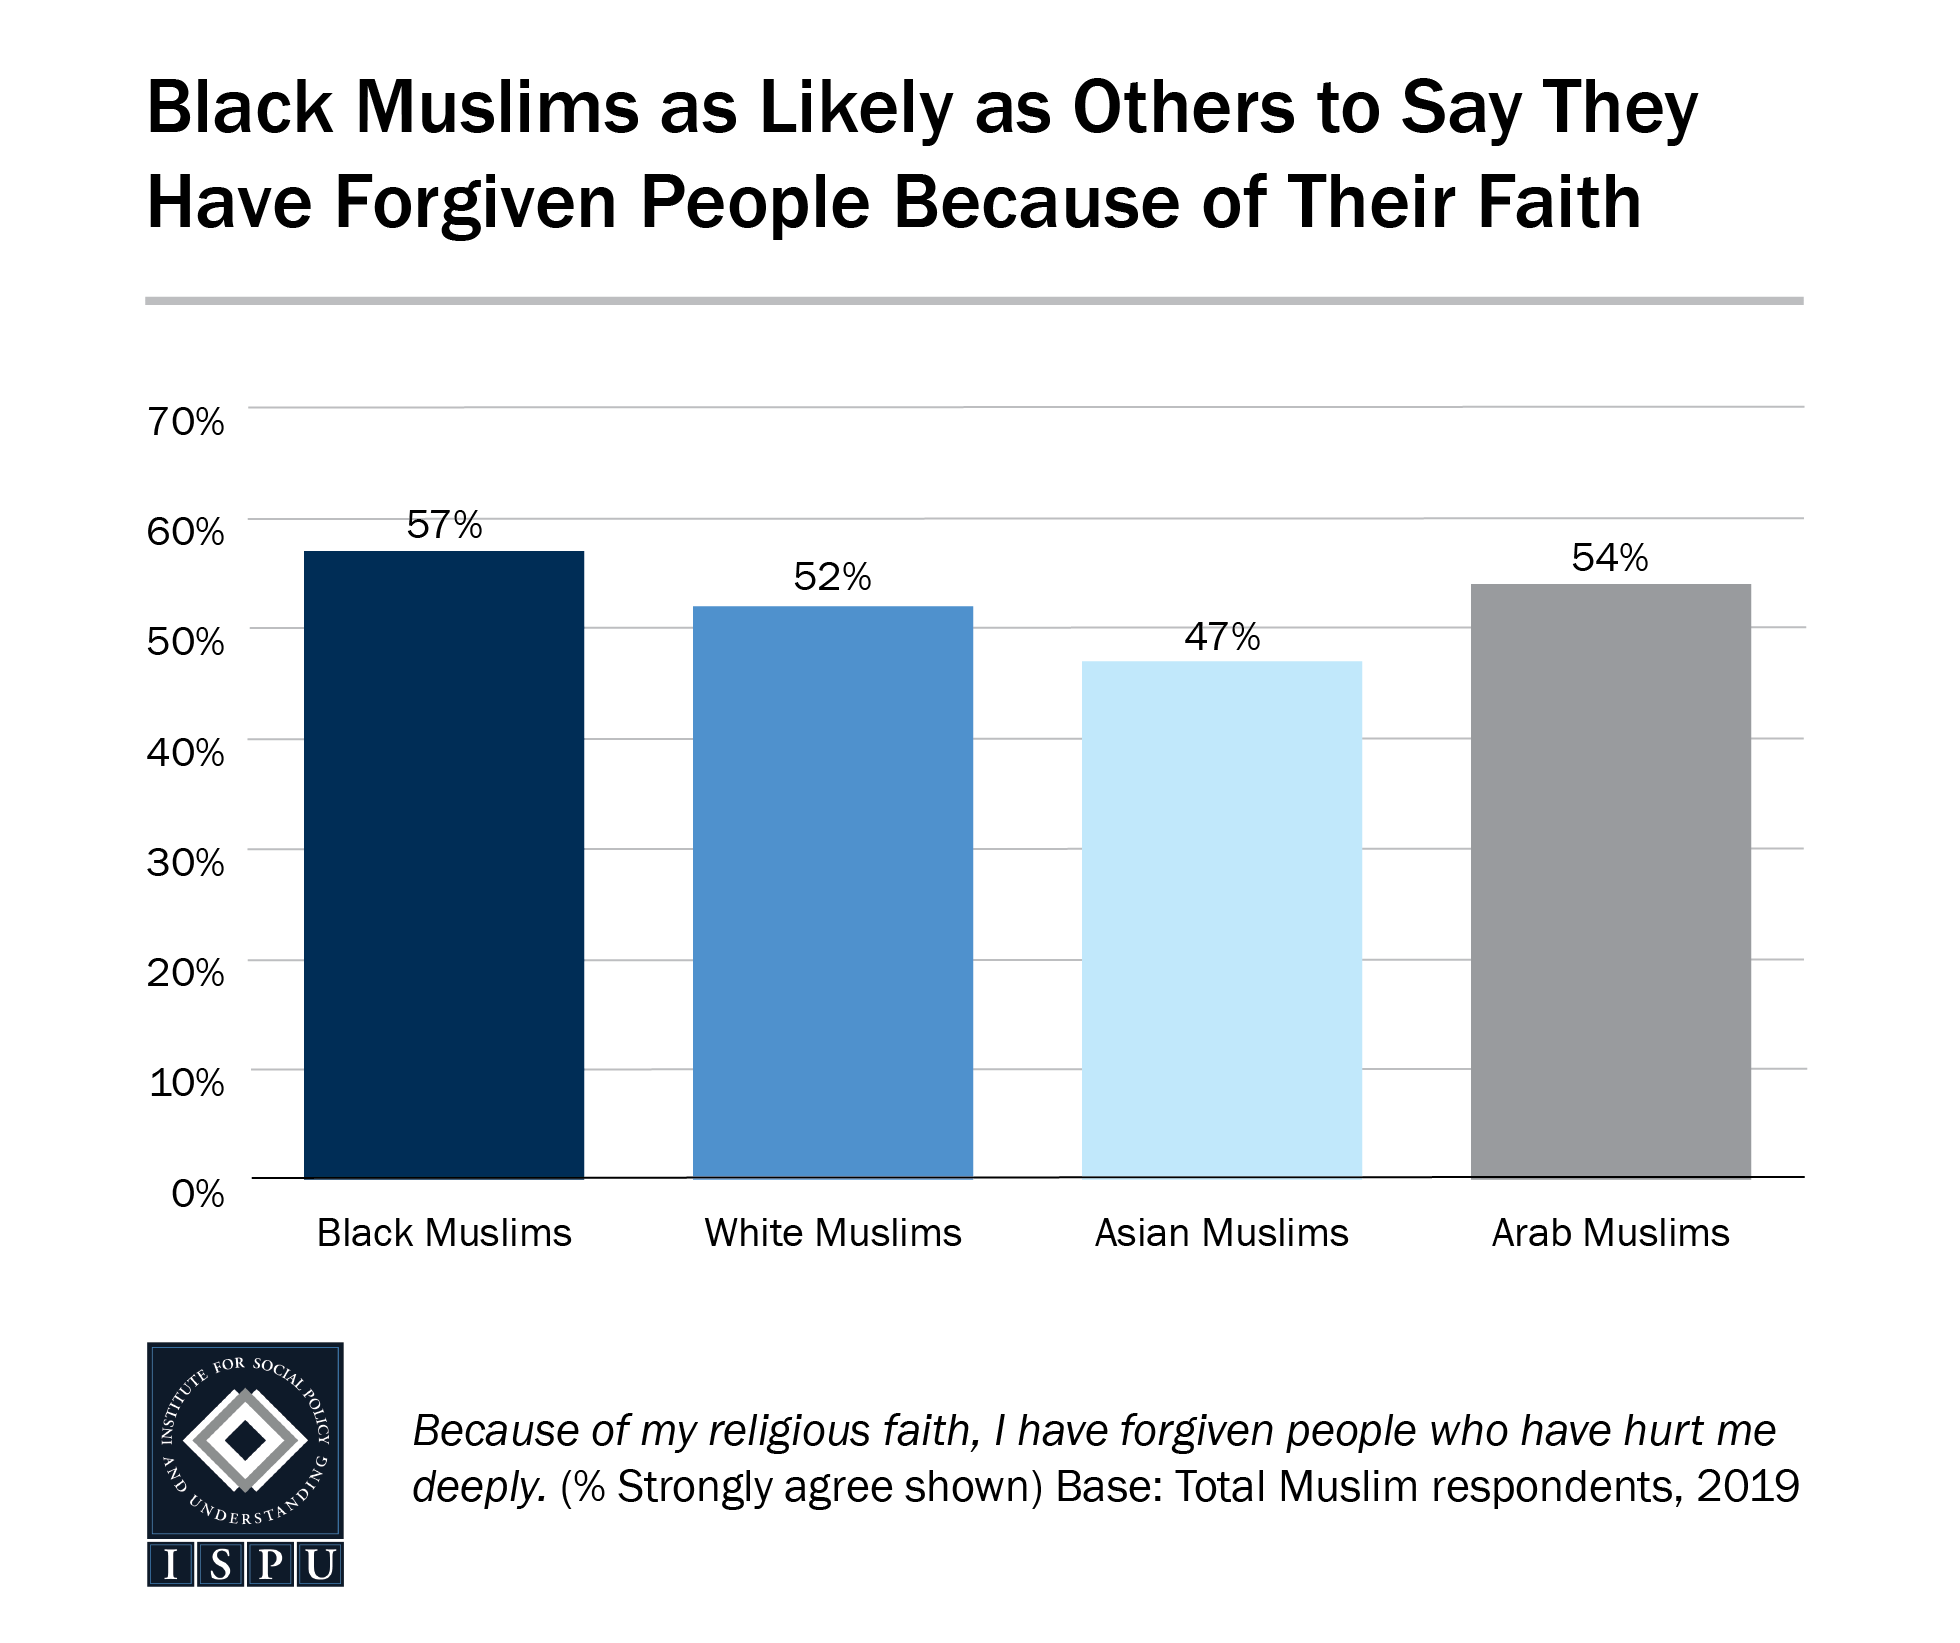 A bar graph showing that Black Muslims are as likely as other Muslims to say they have forgiven people because of their faith